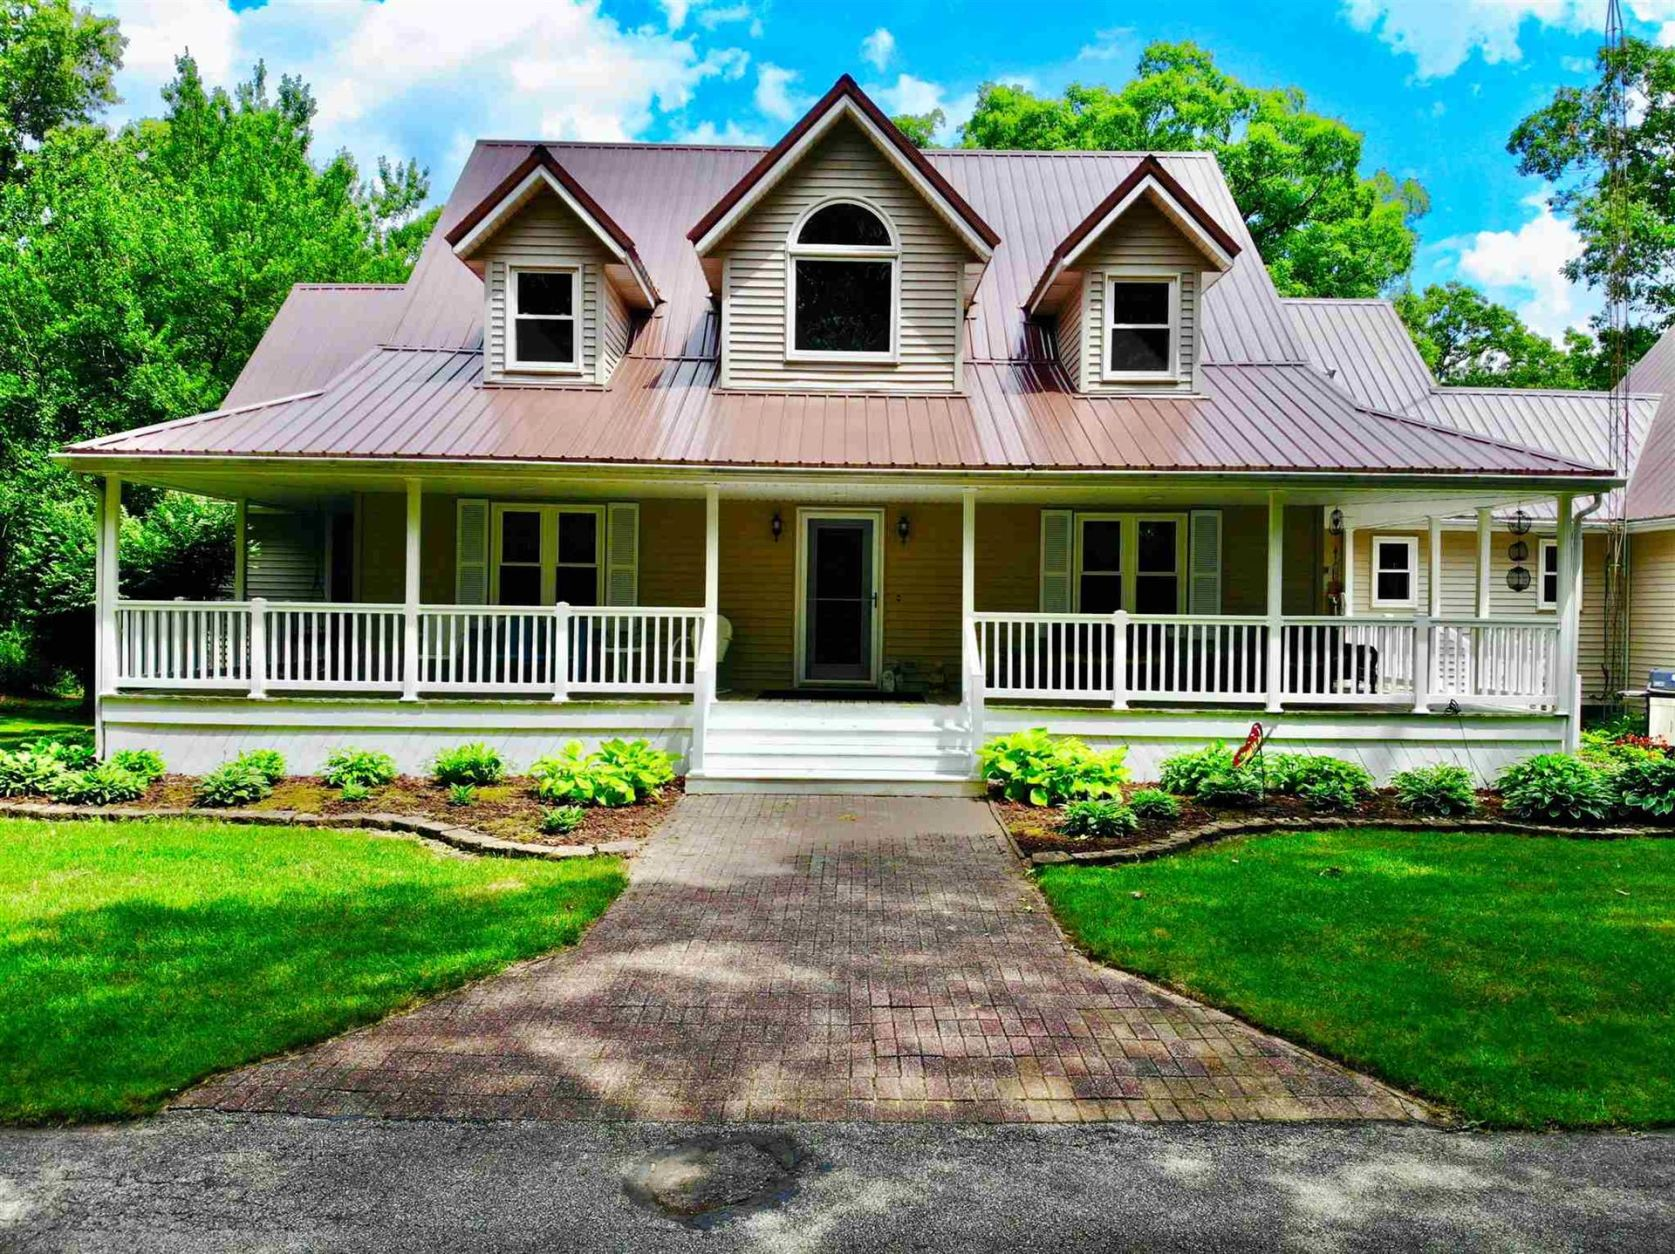 Photo of 4193 E 216 S Road, Knox, IN 46534 (MLS # 202026826)